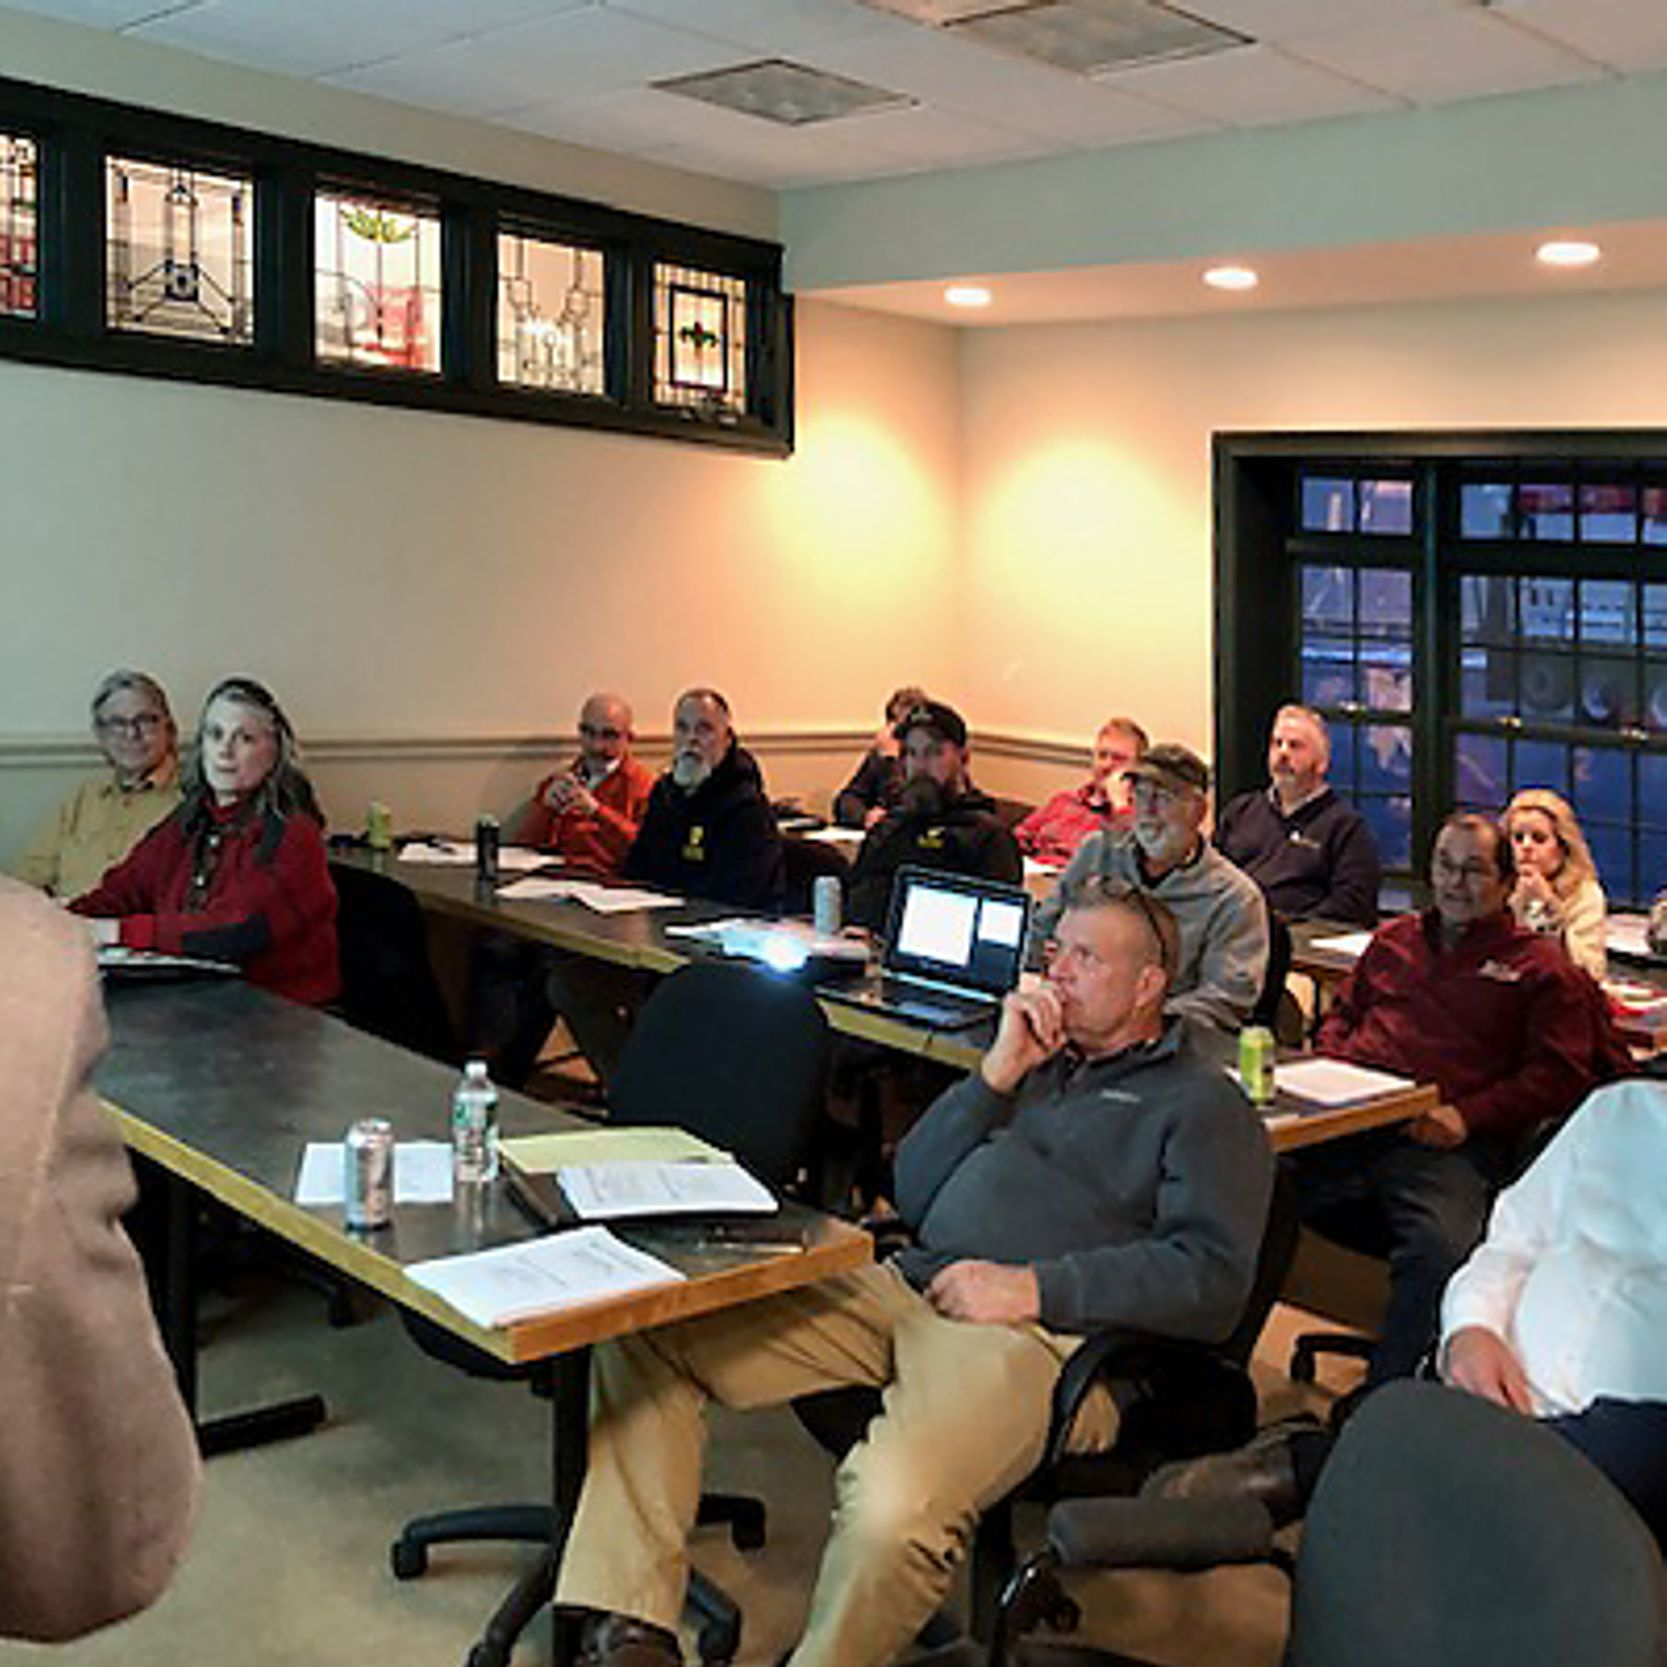 People attending the HBRA seminar in the training room at National Building Products in East Hartford, CT